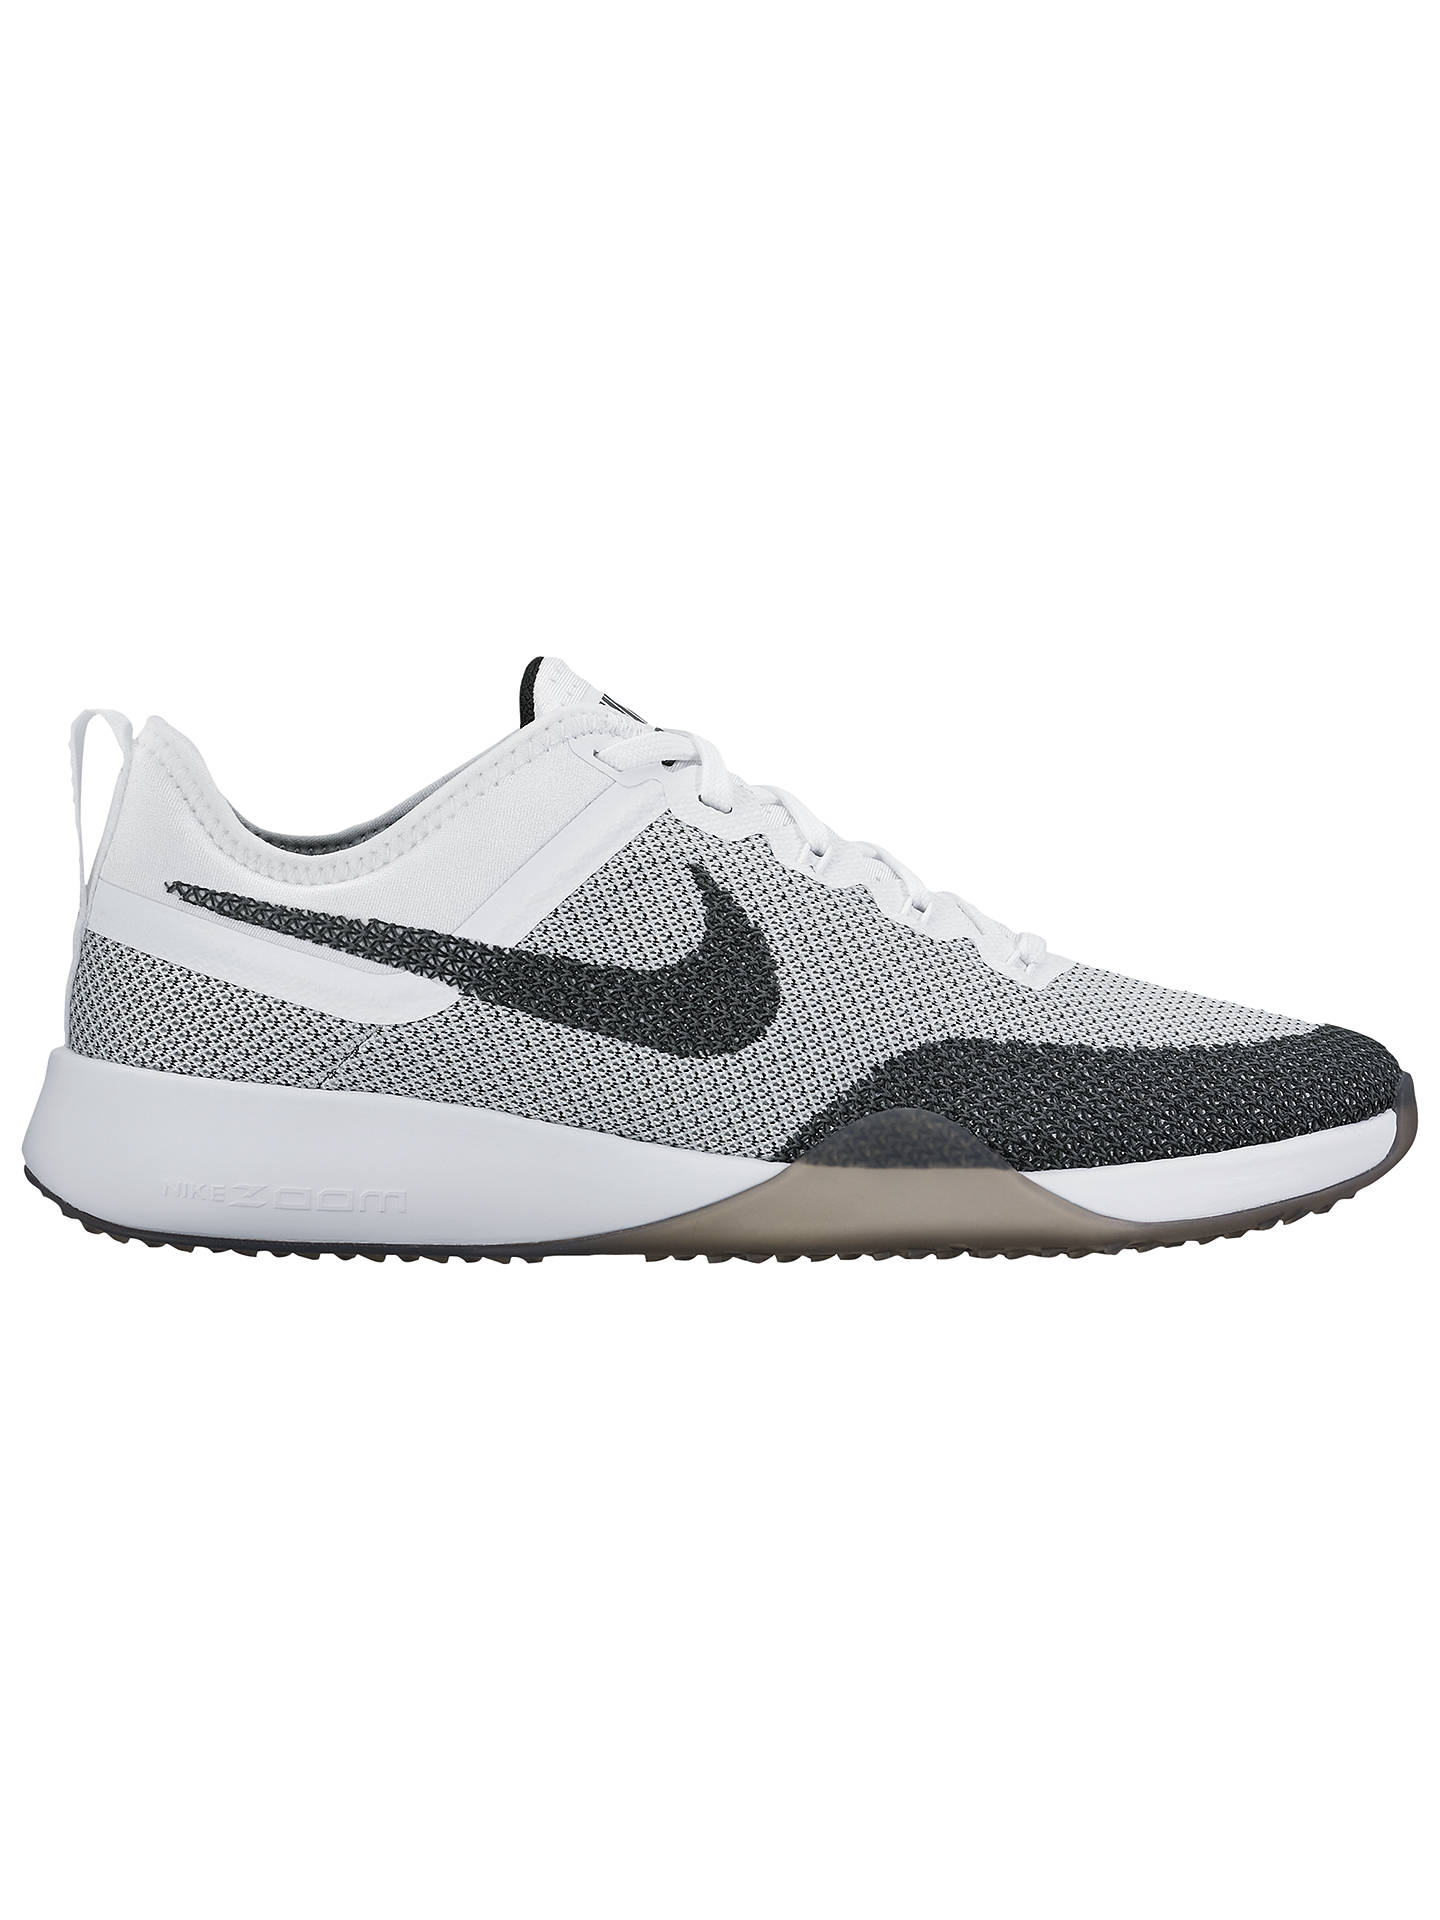 2edf112f7073b Nike Air Zoom Dynamic Women s Cross Trainers at John Lewis   Partners